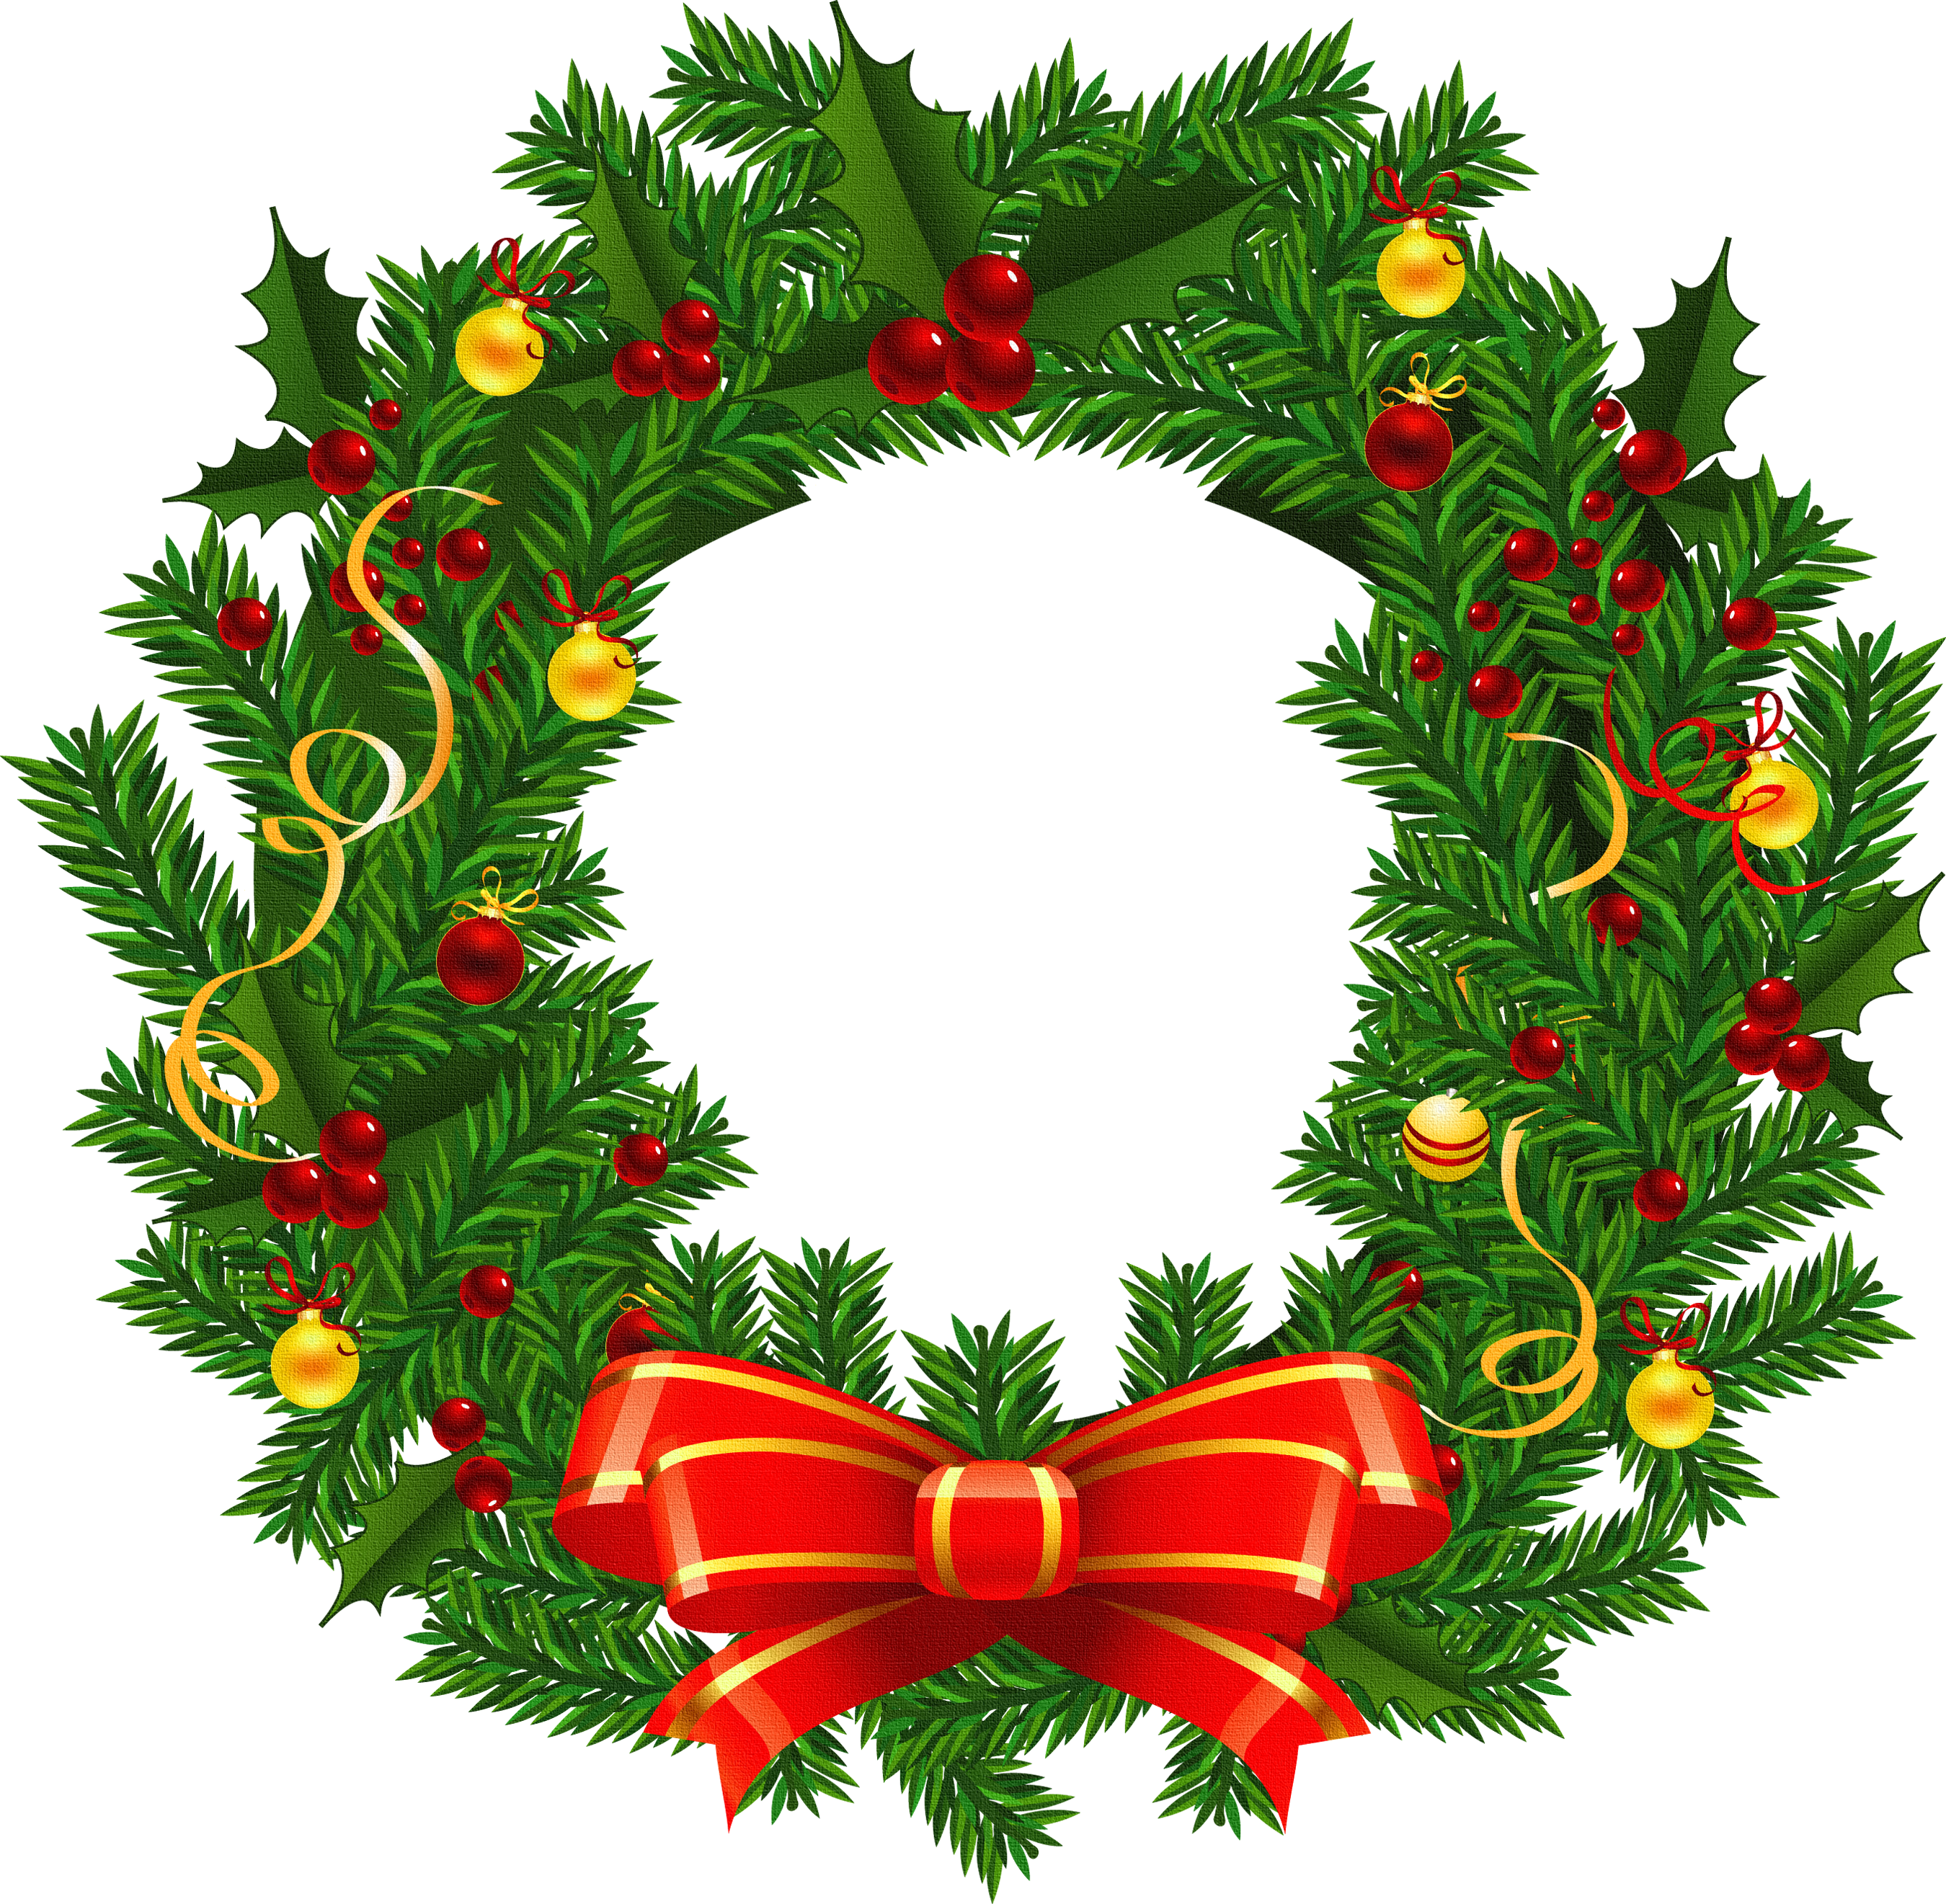 Christmas wreath clipart png graphic royalty free library Large Transparent Christmas Wreath PNG Picture | Gallery ... graphic royalty free library